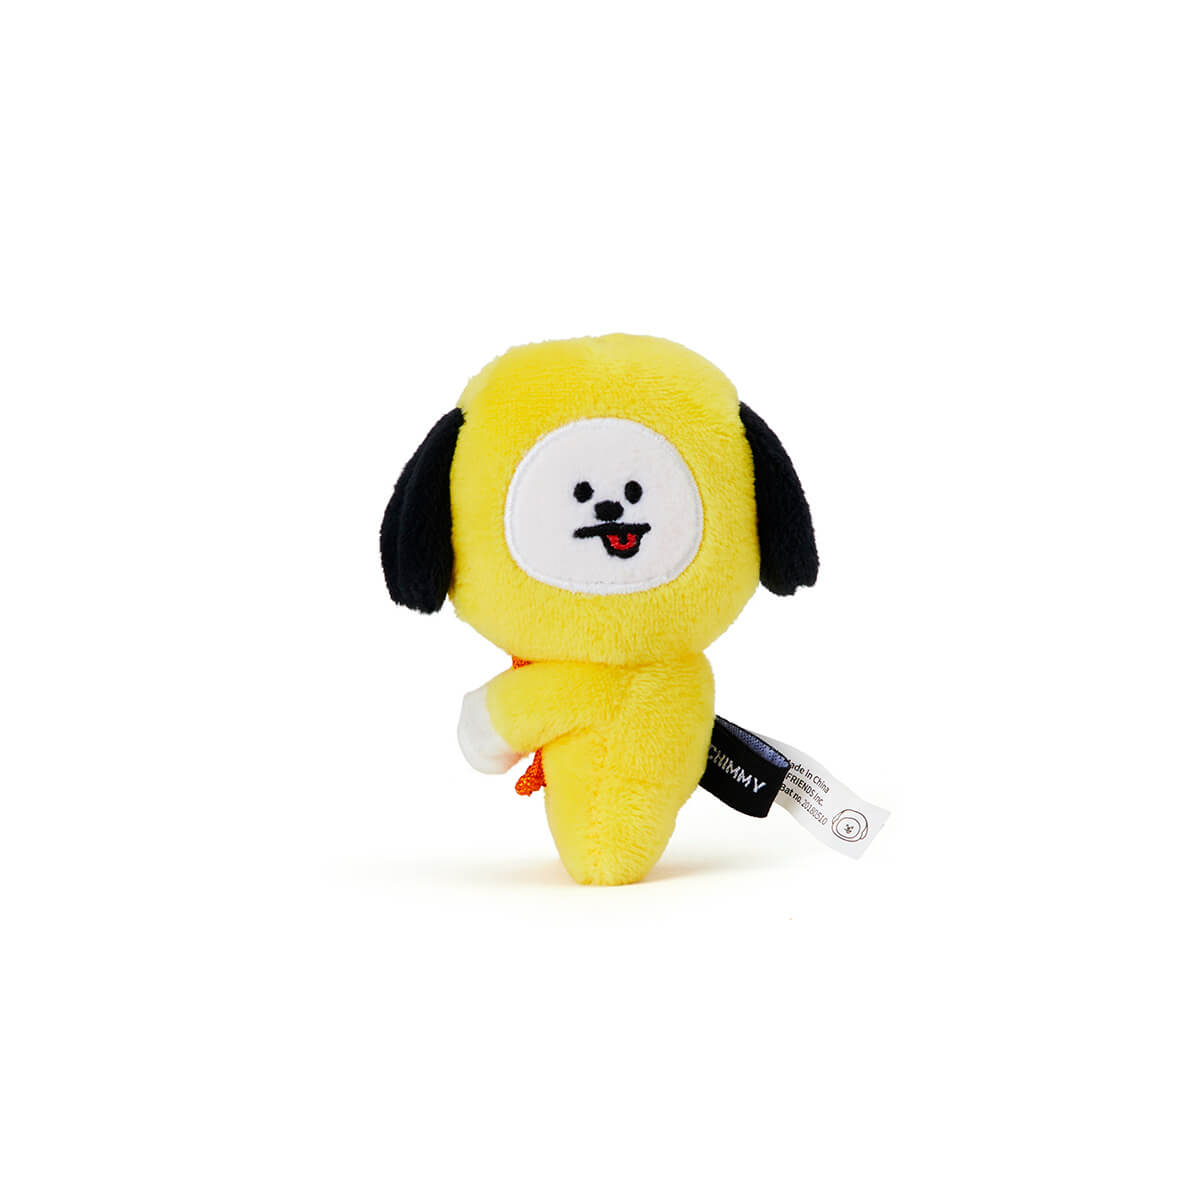 BT21 CHIMMY Plush Magnet